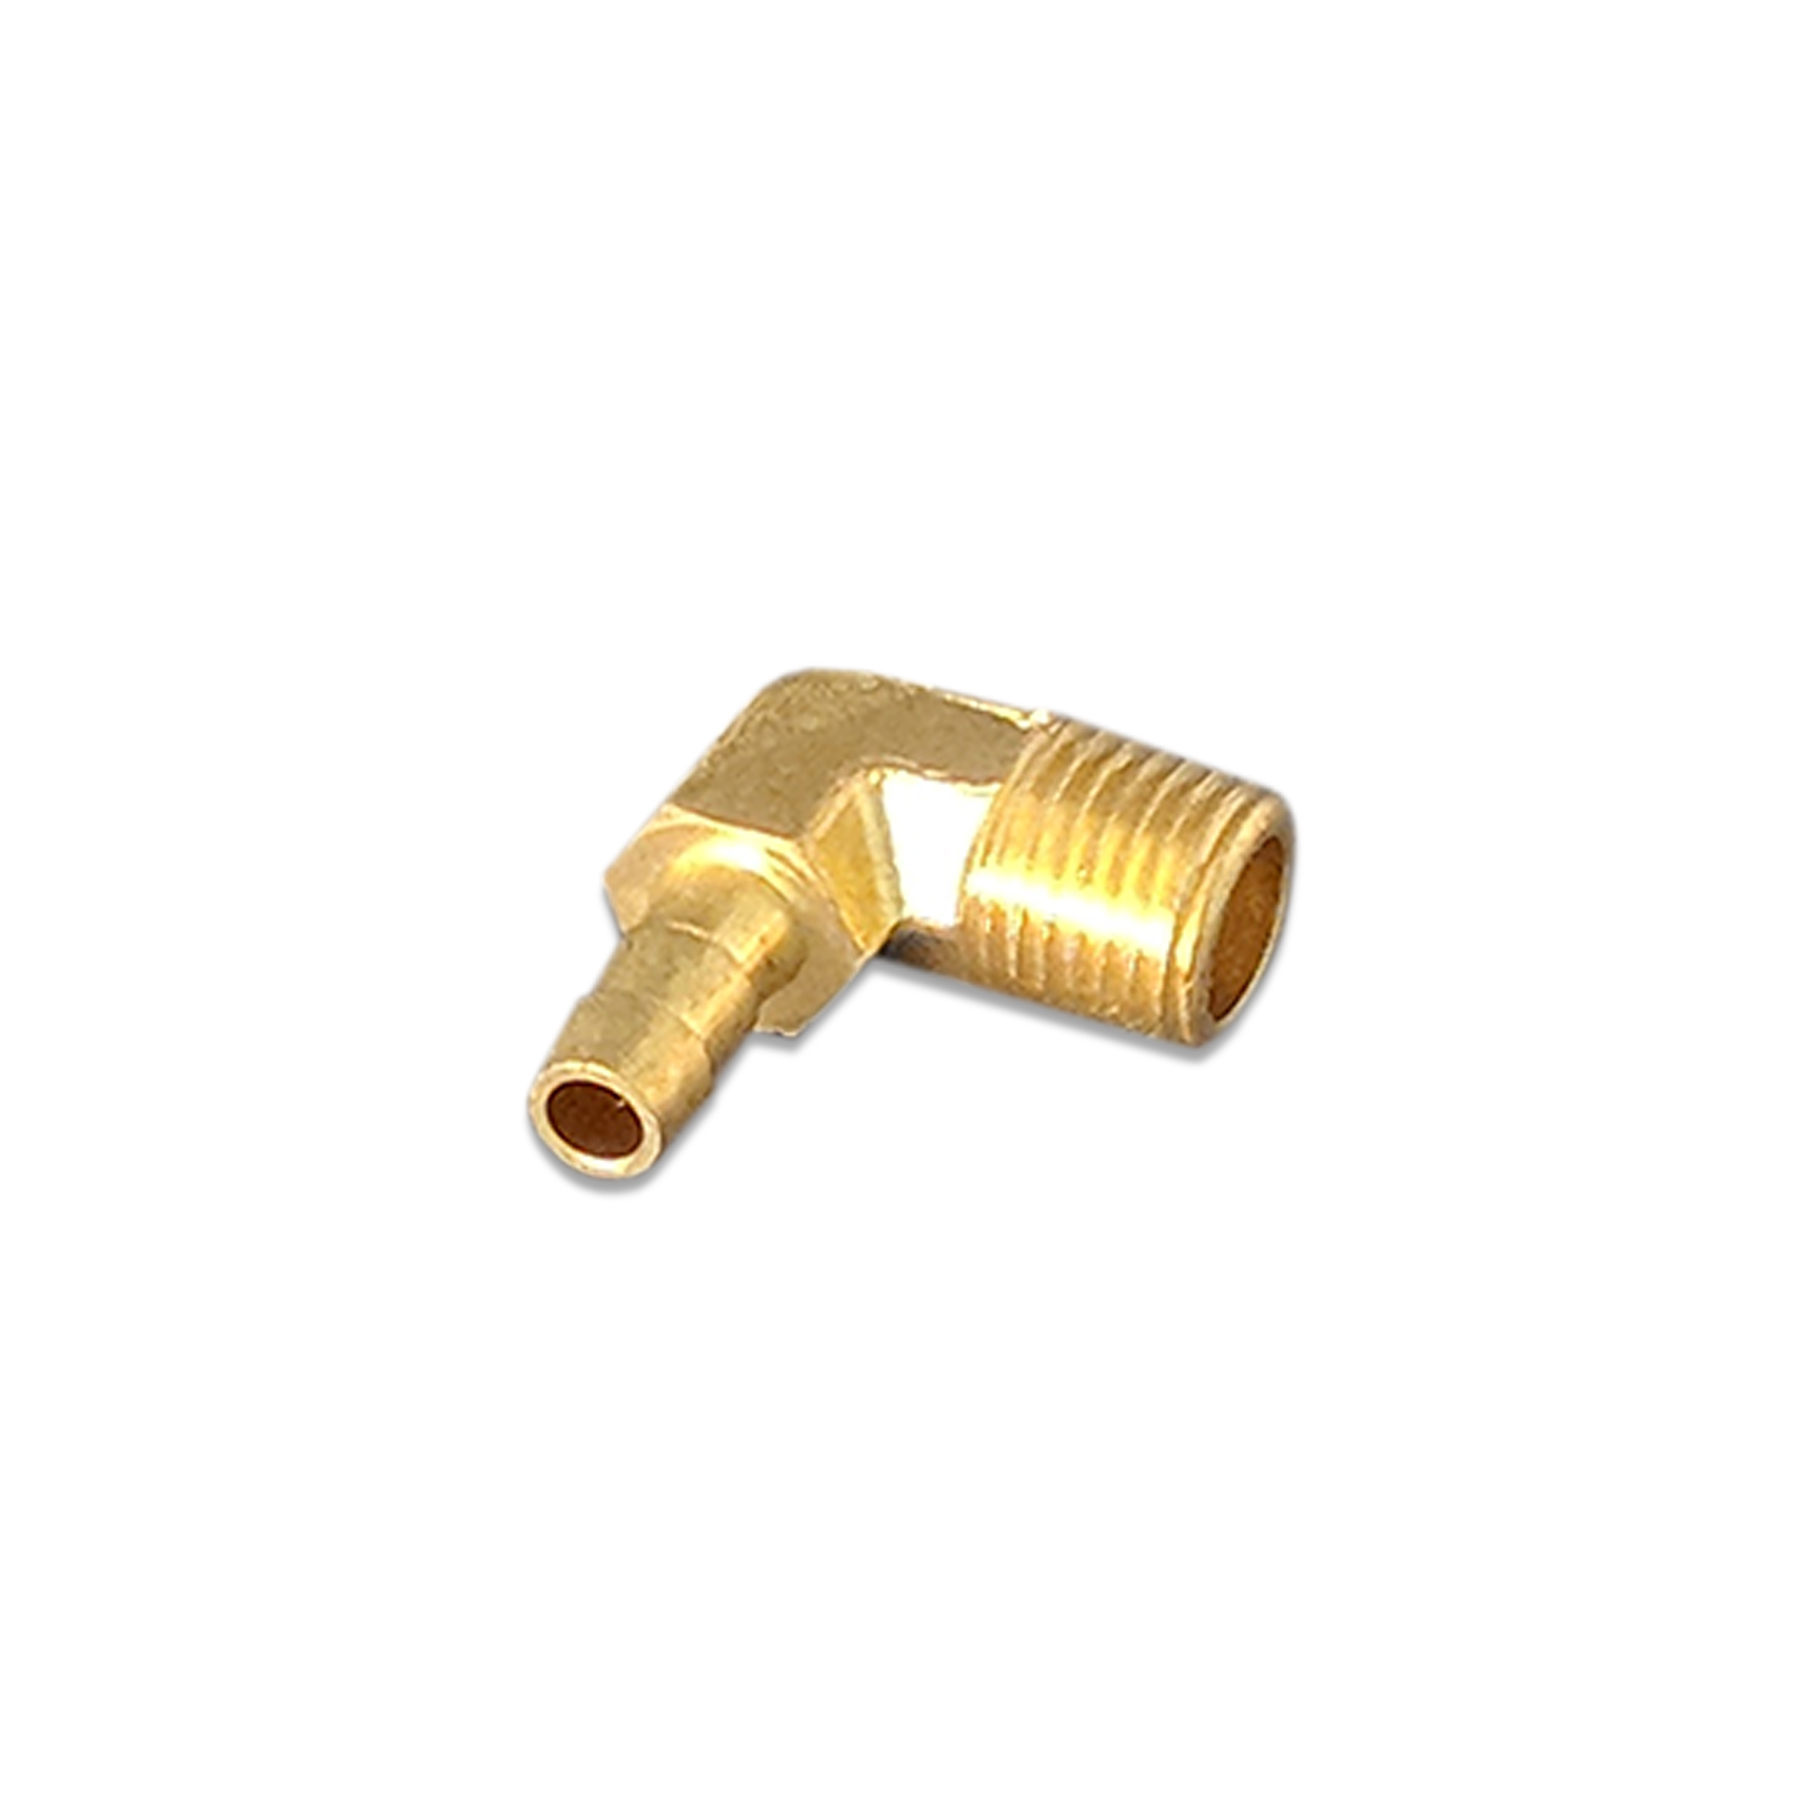 Brass Fitting, 90 Degree Elbow, Barb, 1/4 x 1/4, (M) NP